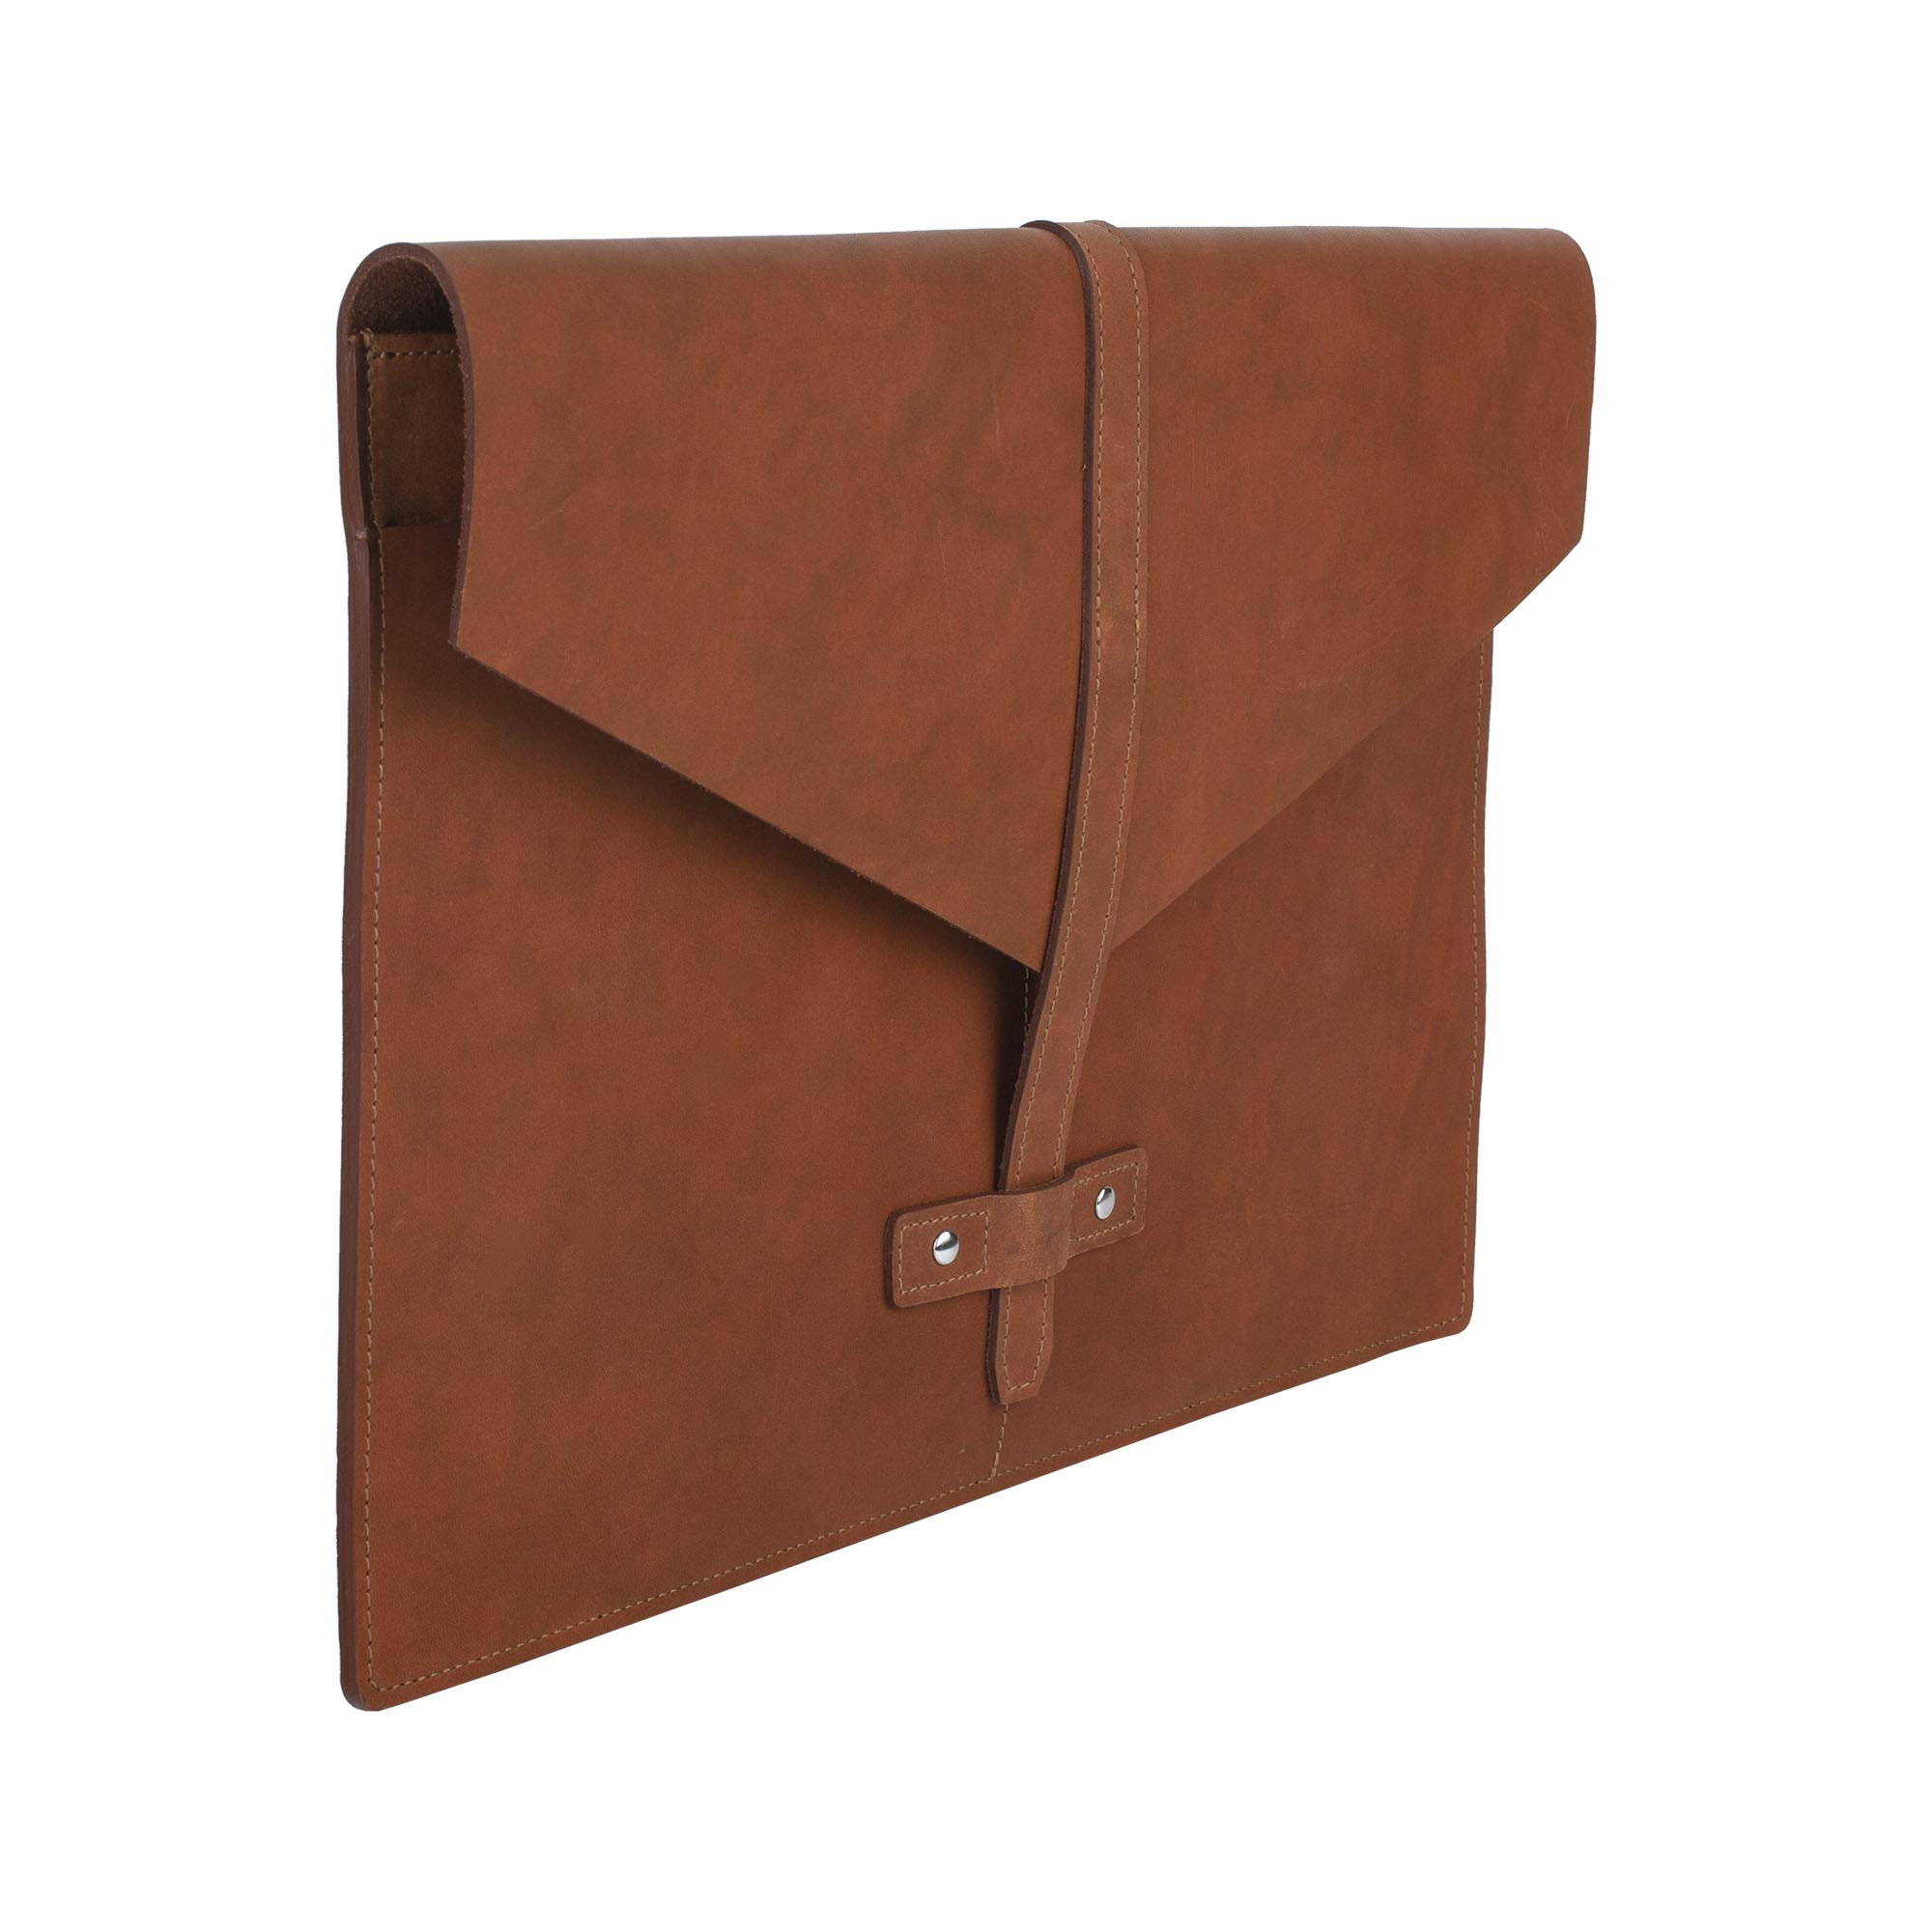 SLATE COLLECTION Belltown Small Laptop Sleeve, Full-Grain Leather (Cognac, fits 13'' Laptop) by SLATE COLLECTION (Image #6)